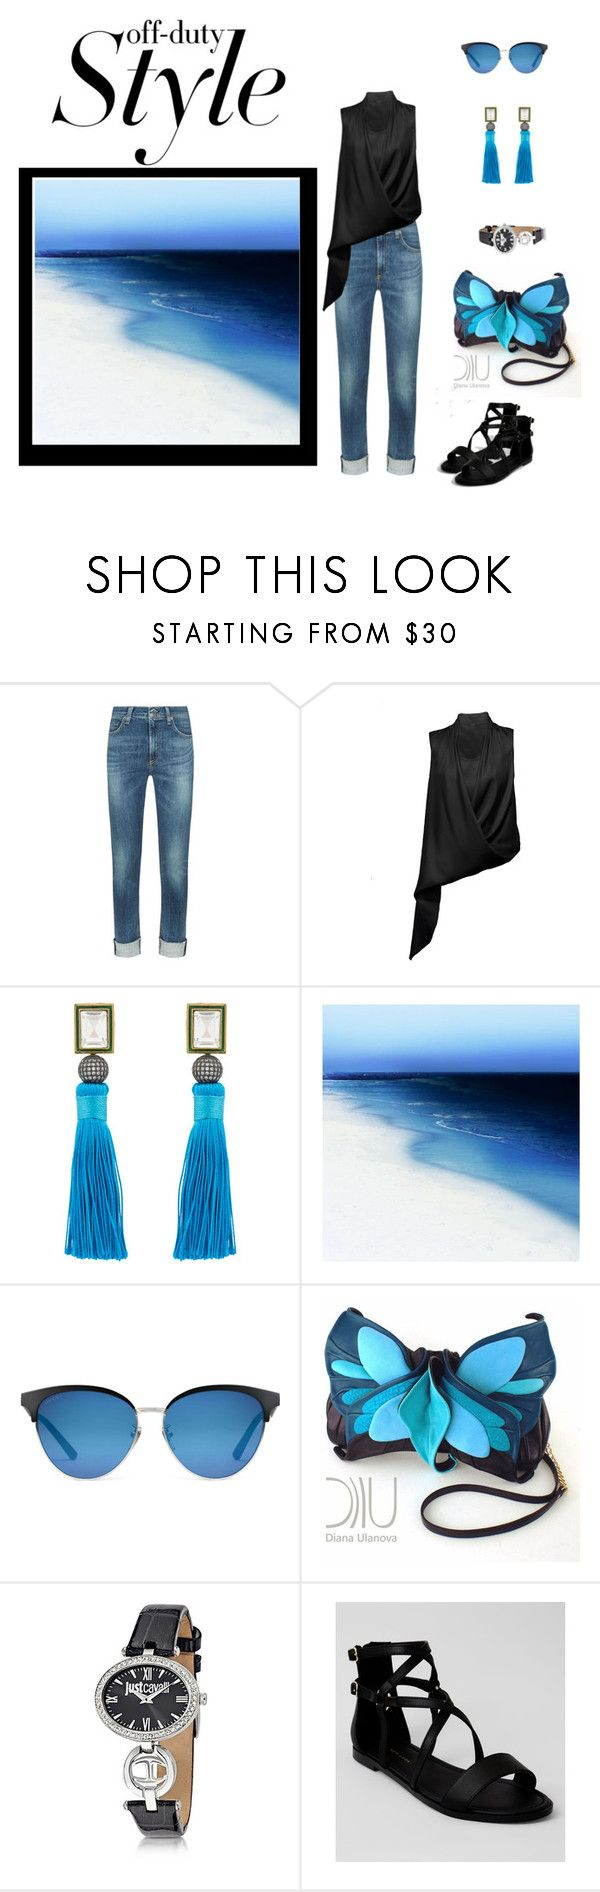 """Just Starting Out"" by jjsunnygirl ❤ liked on Polyvore featuring rag & bone, chikimiki, Blossom Box, Barclay Butera, Gucci, Just Cavalli and New Look"